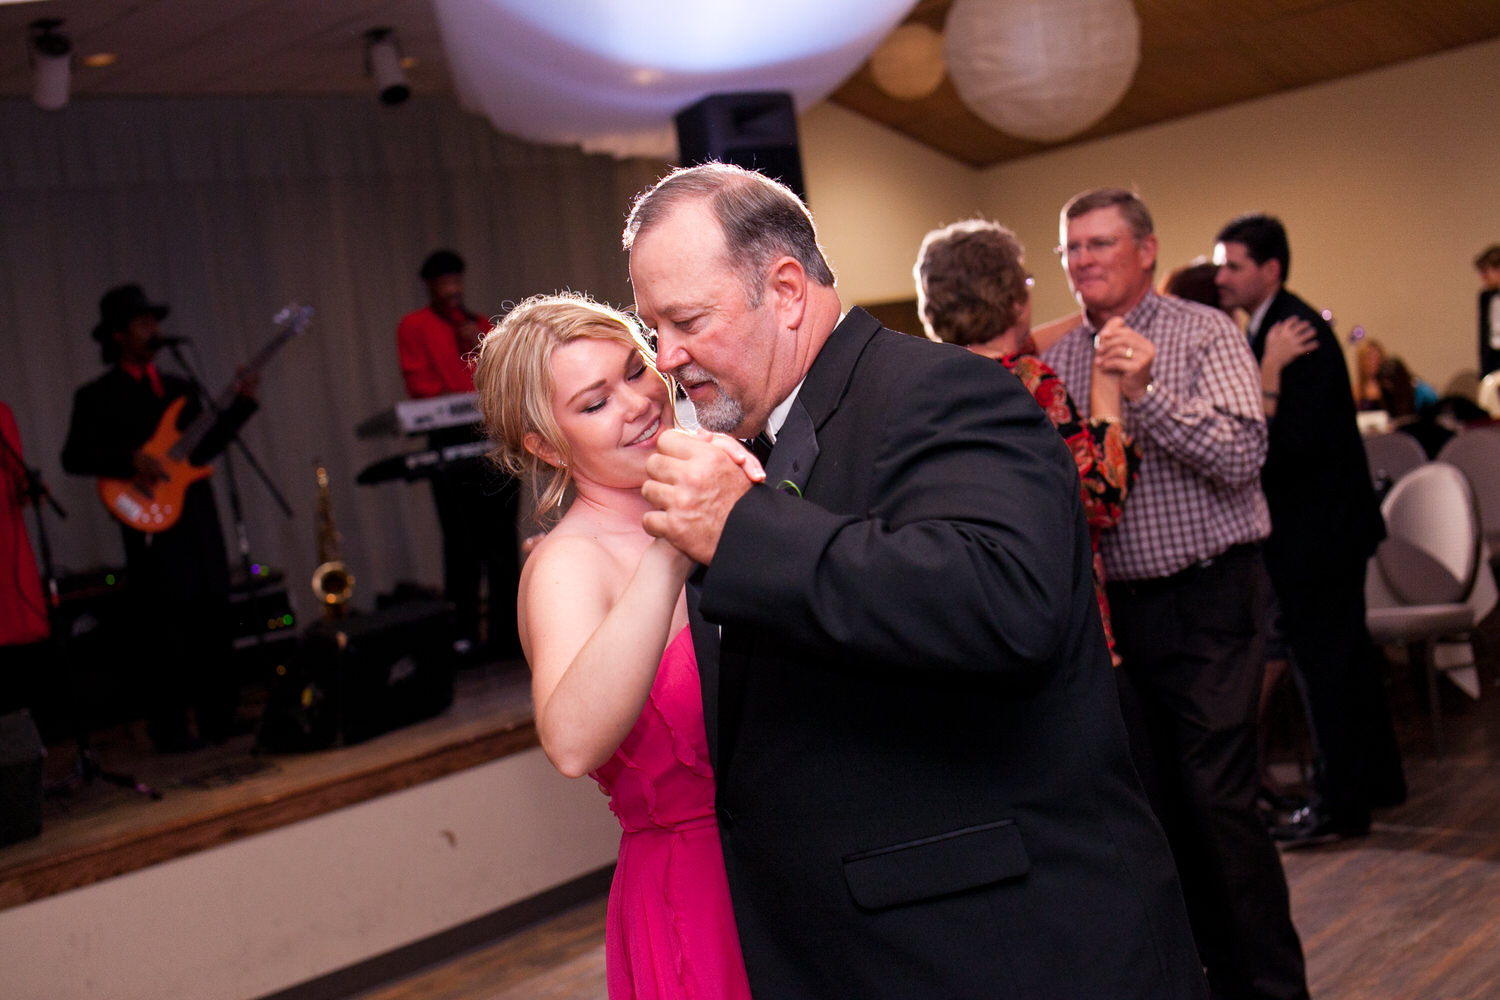 father and sister dancing